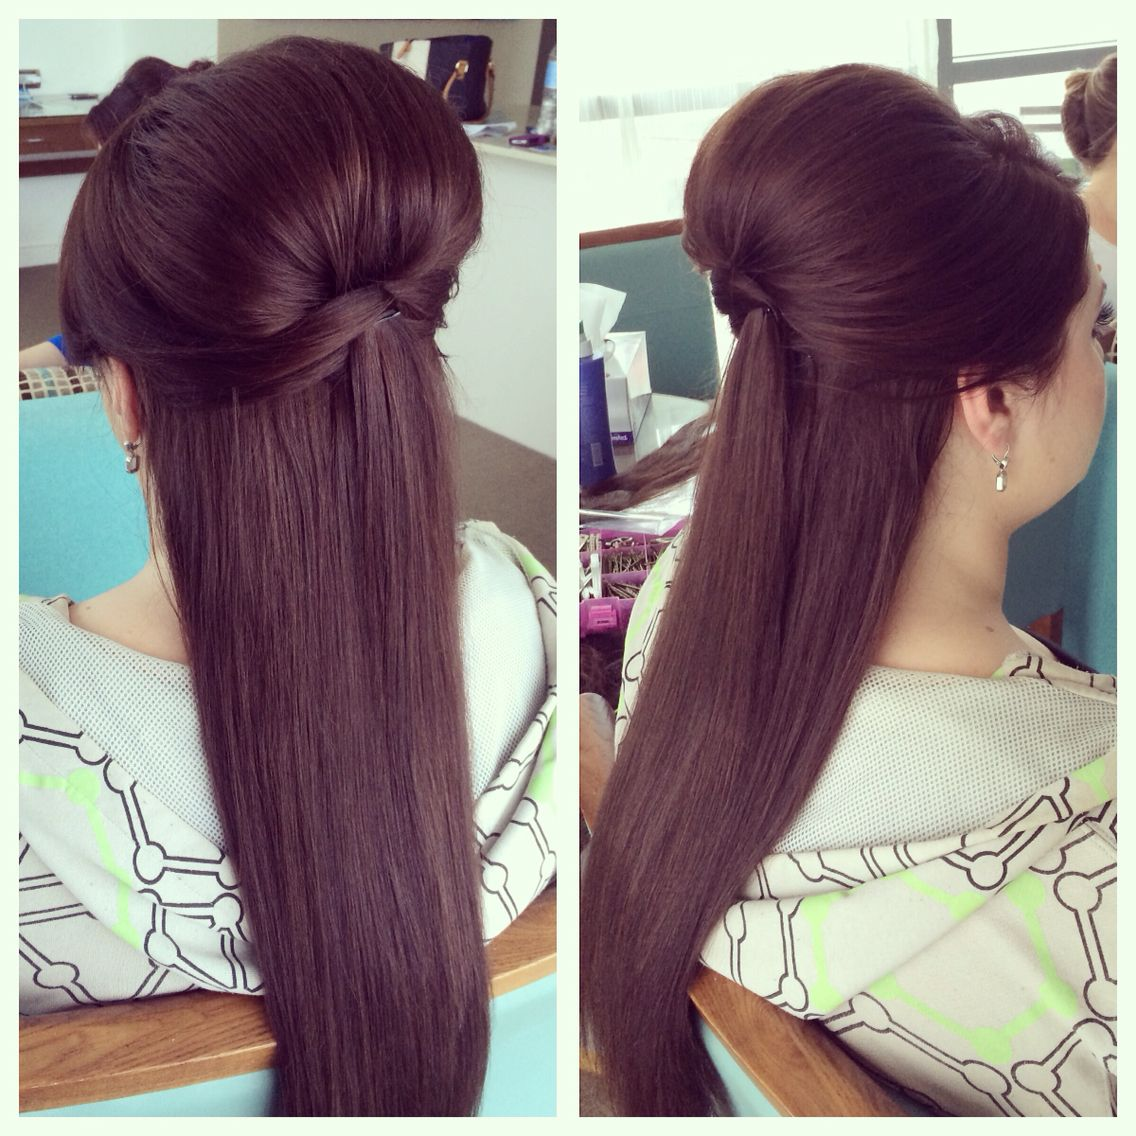 Wedding Hairstyle With Hair Extensions: Wedding Hair Using Clip In Extensions